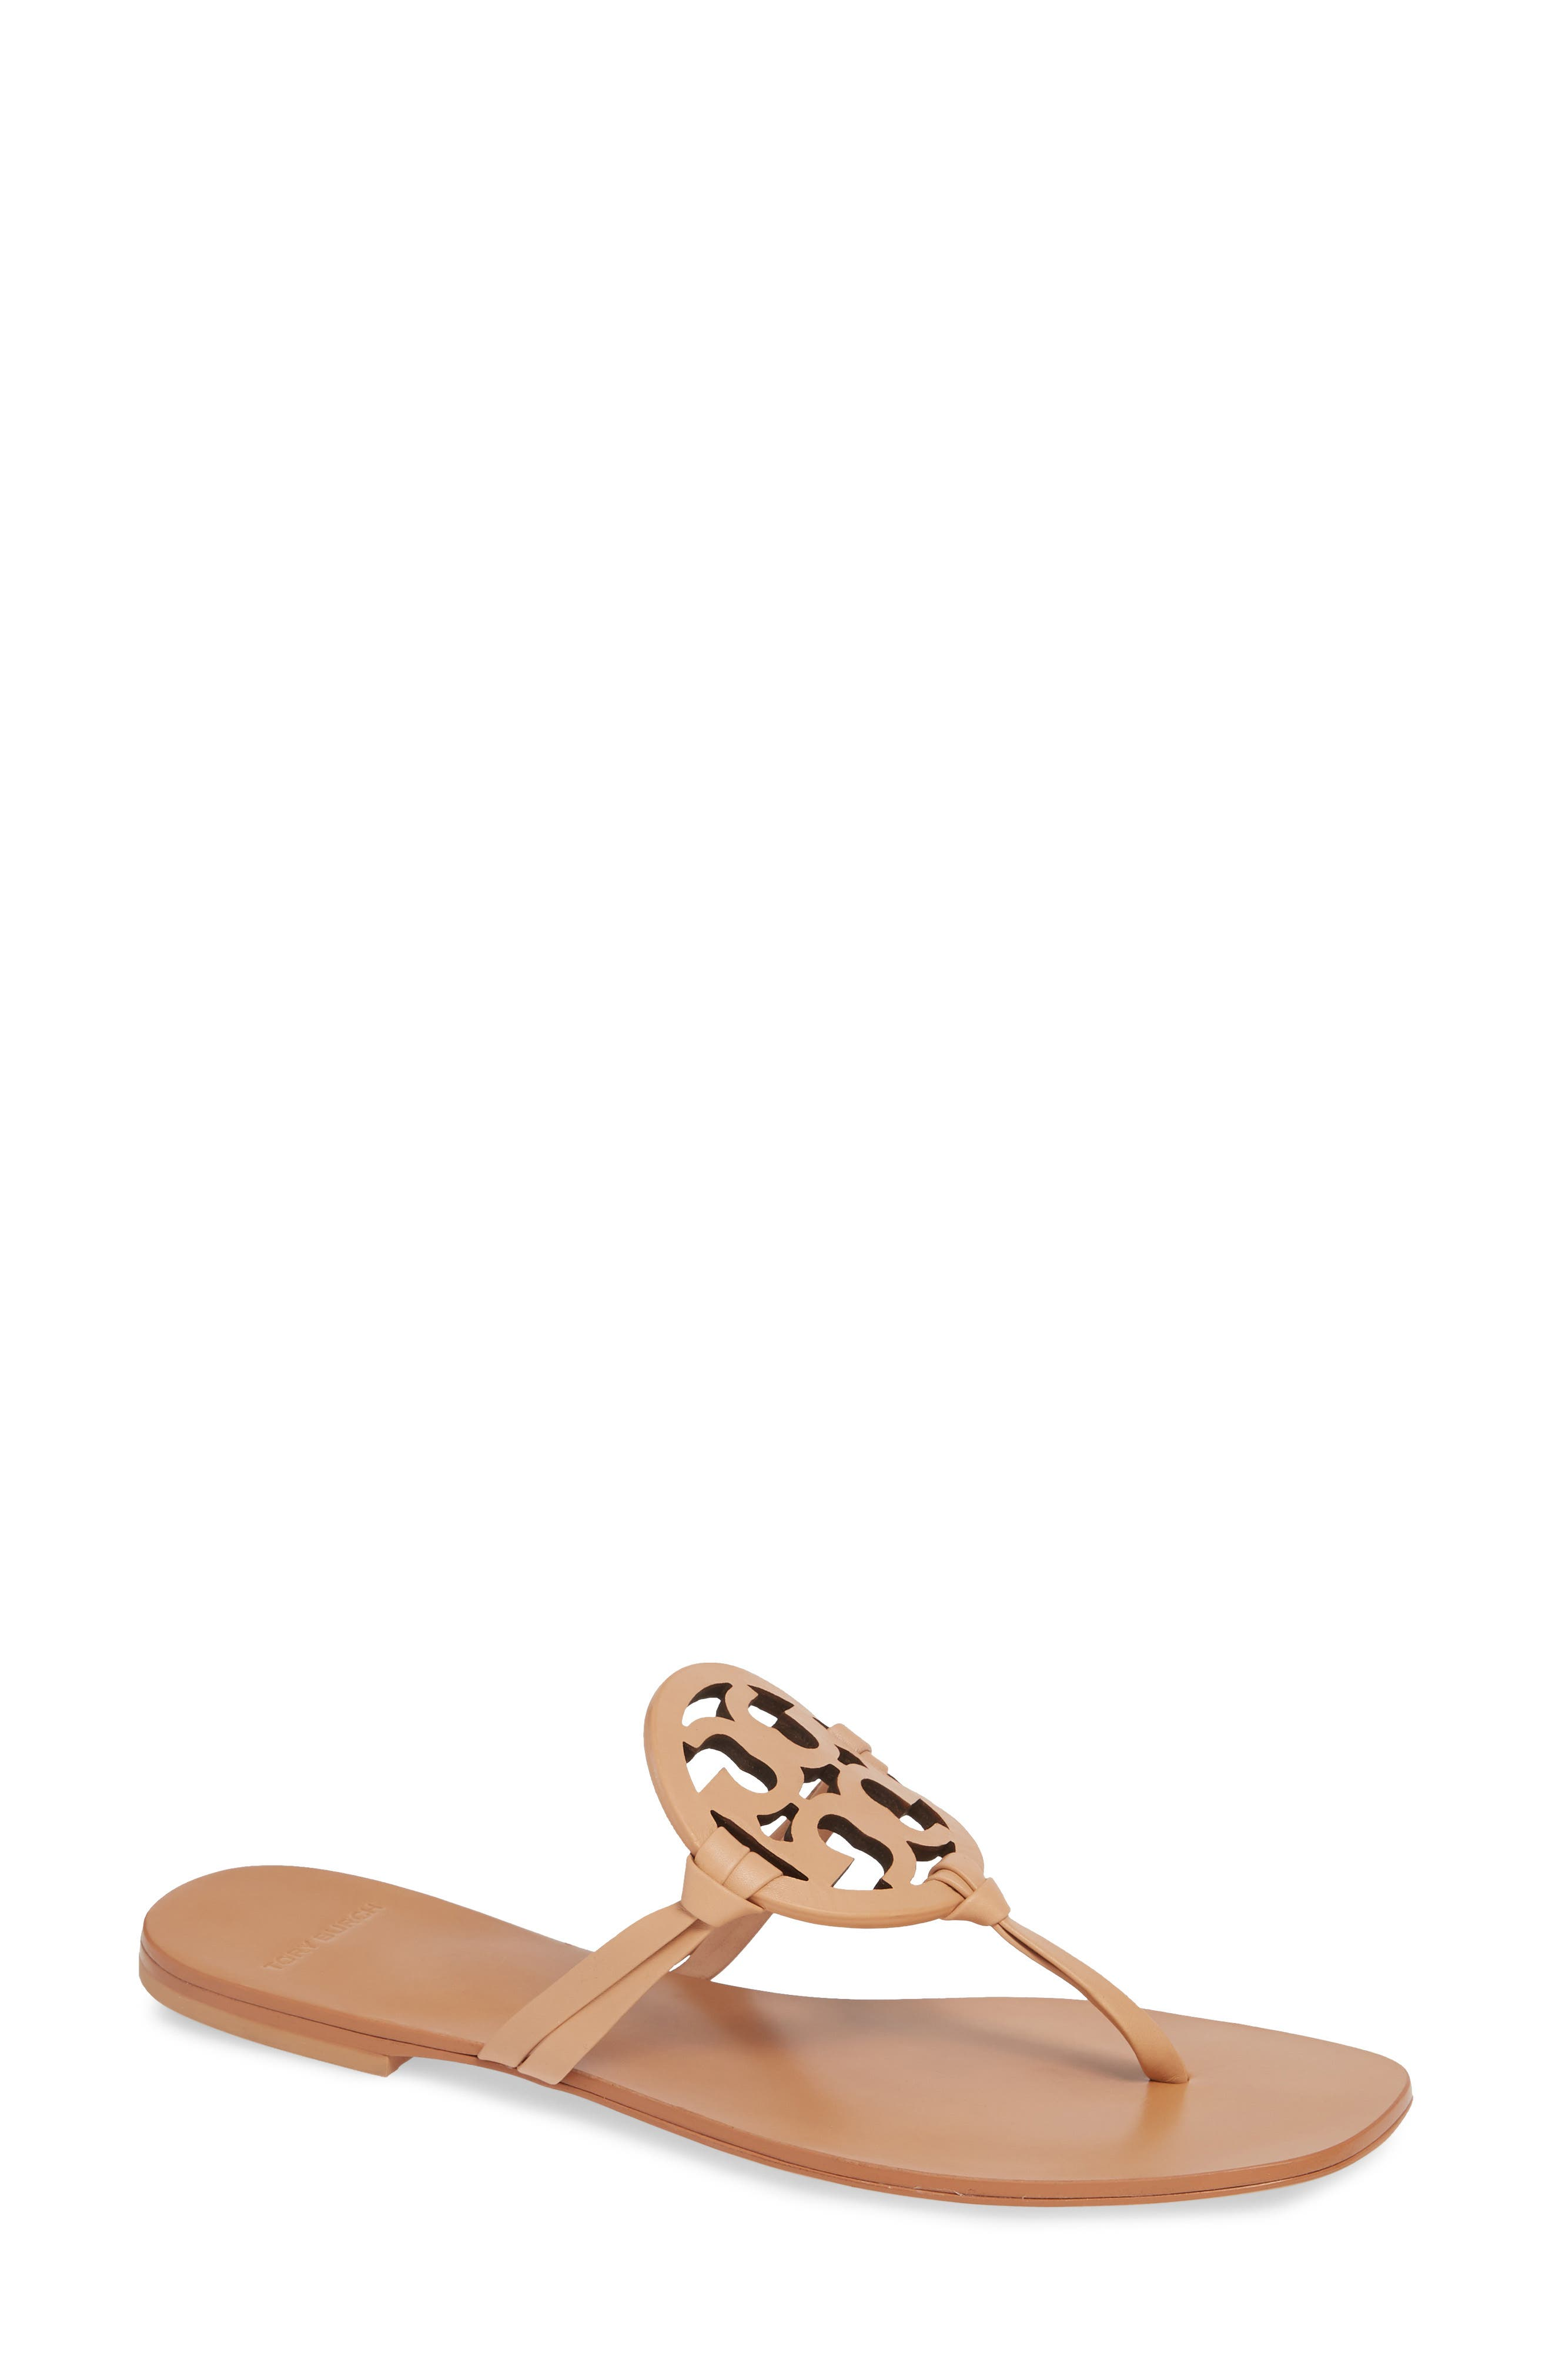 TORY BURCH, Miller Square Toe Thong Sandal, Main thumbnail 1, color, NATURAL VACHETTA